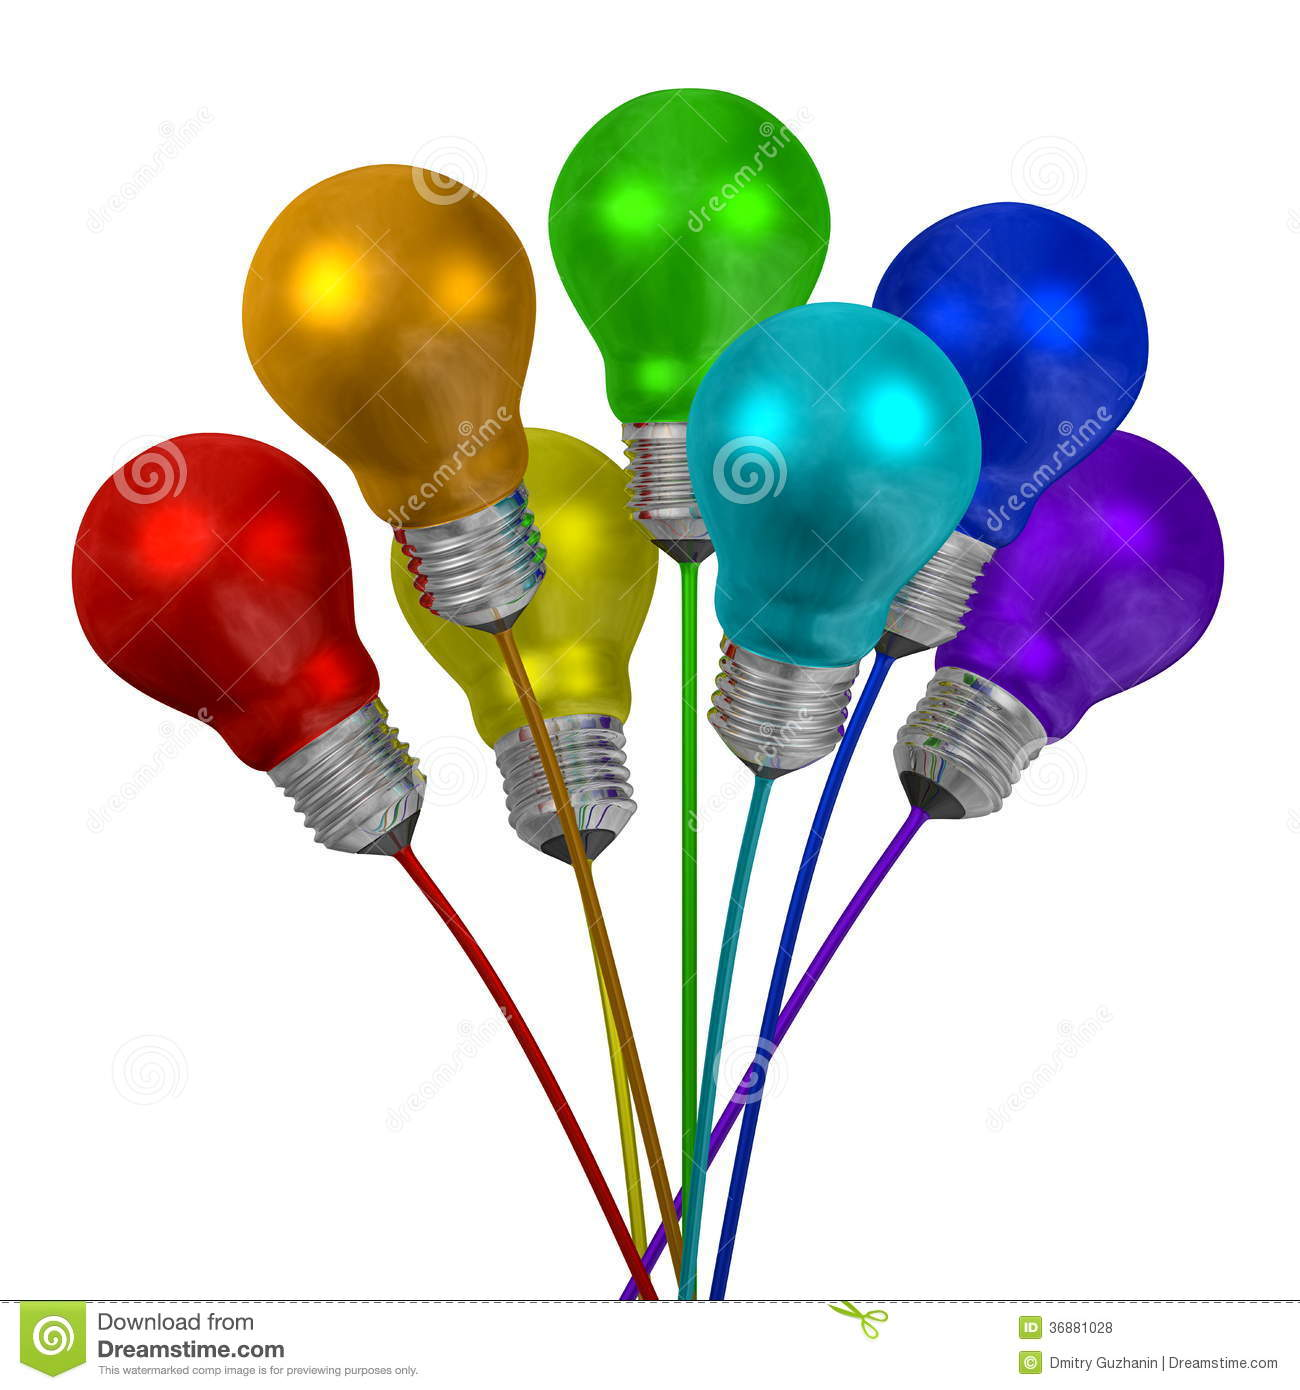 bouquet of many colored light bulbs on wires of different